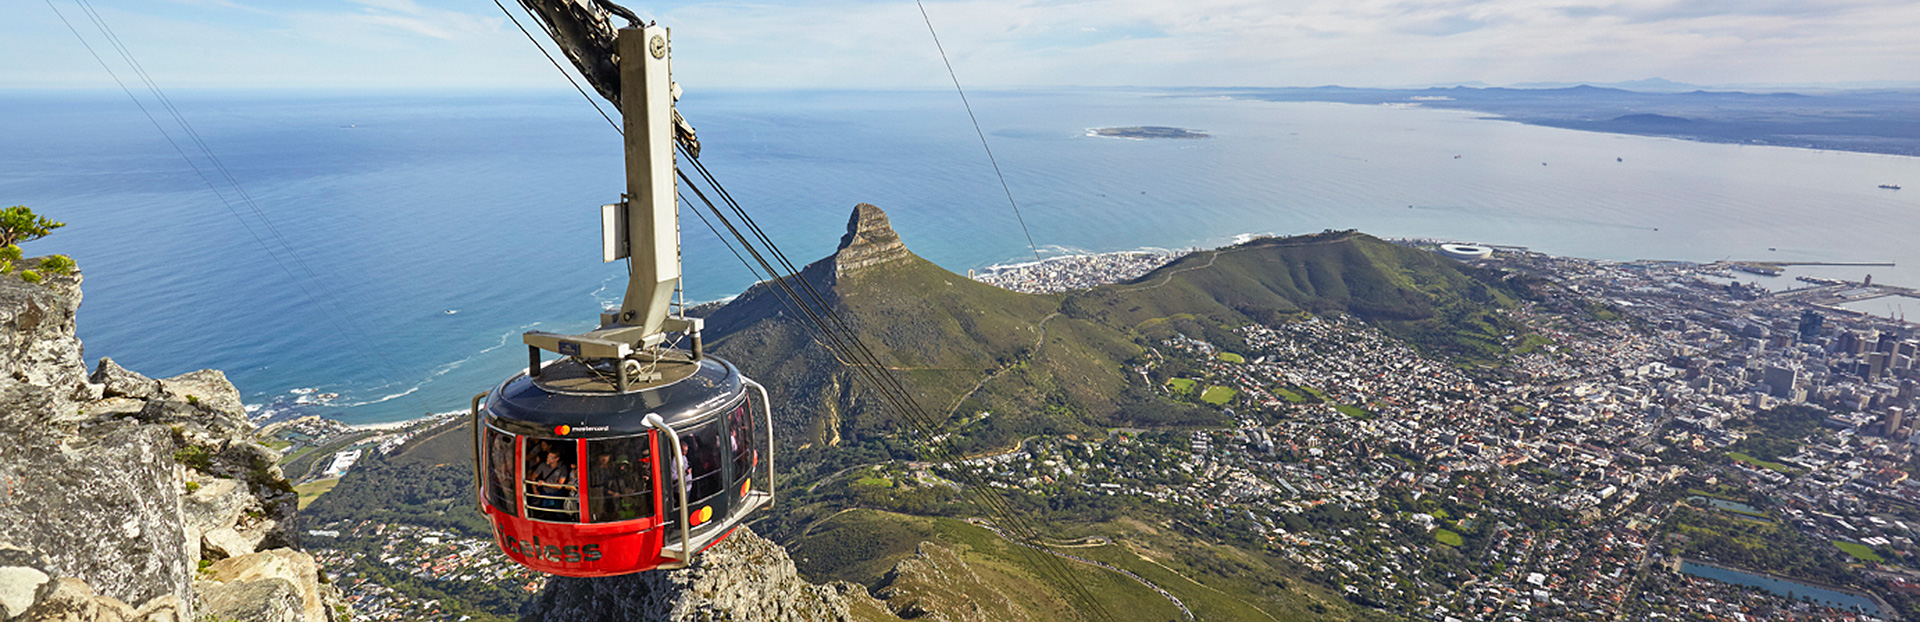 Upper cableway station tour 2